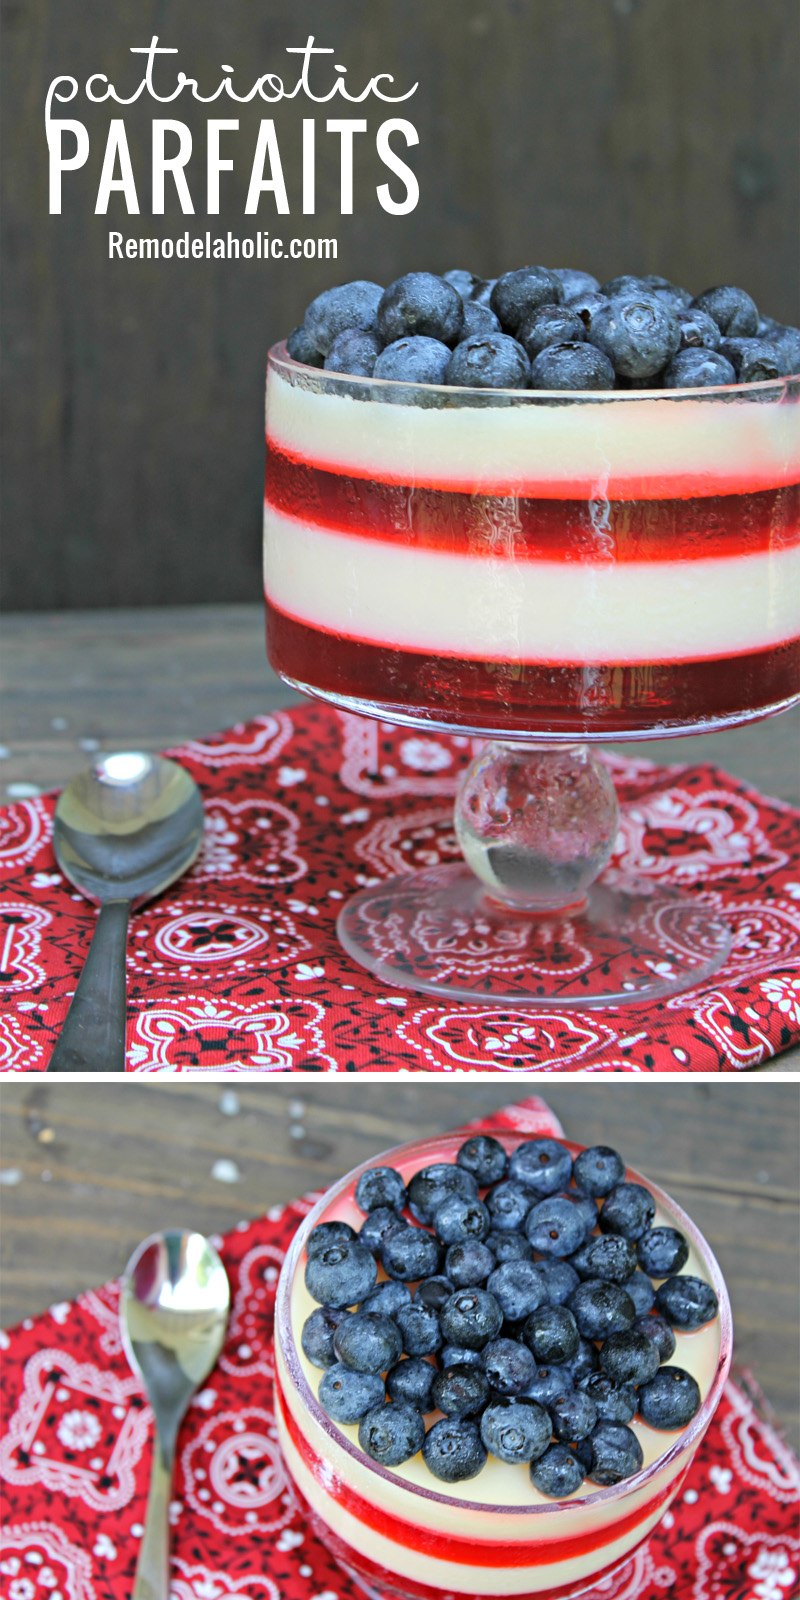 Bring a gorgeous dessert to your fourth of July picnic with these festive and yummy Patriotic Parfaits via Remodelaholic.com